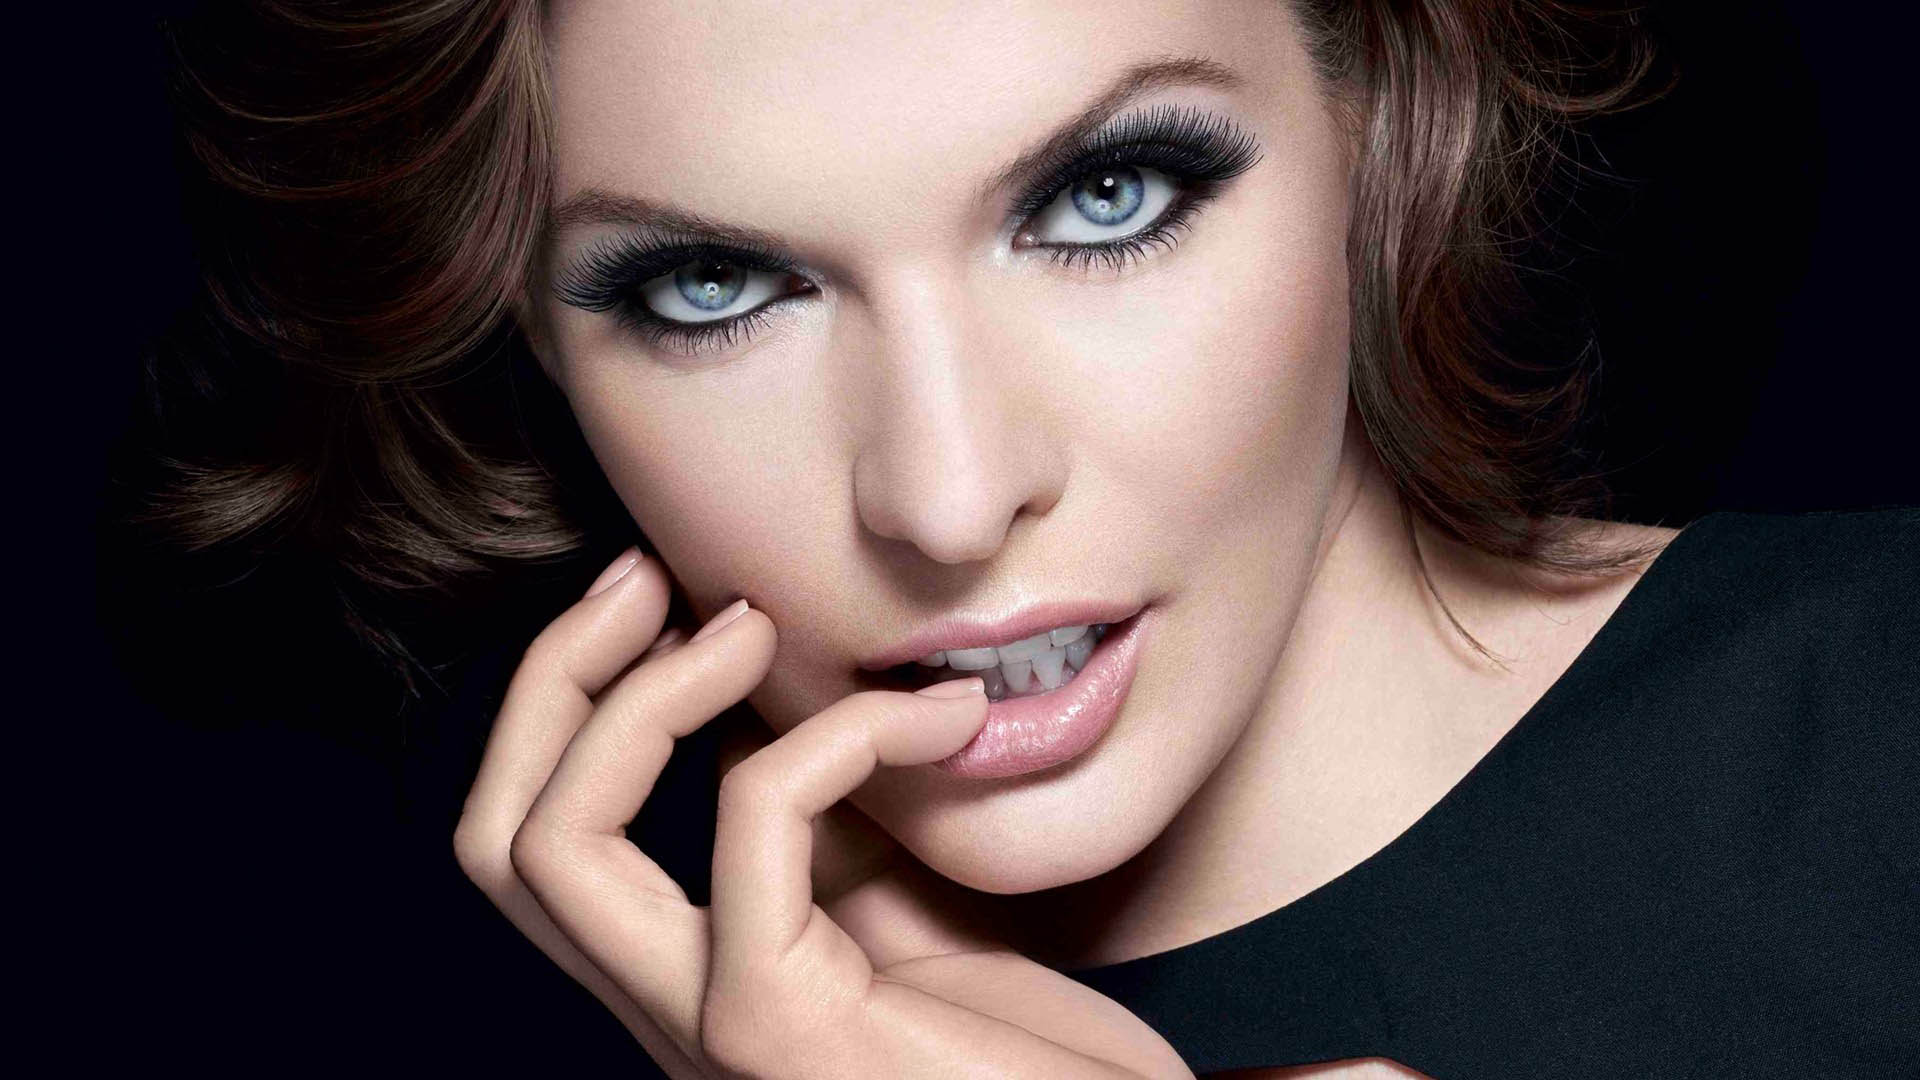 beautiful milla jovovich 31921